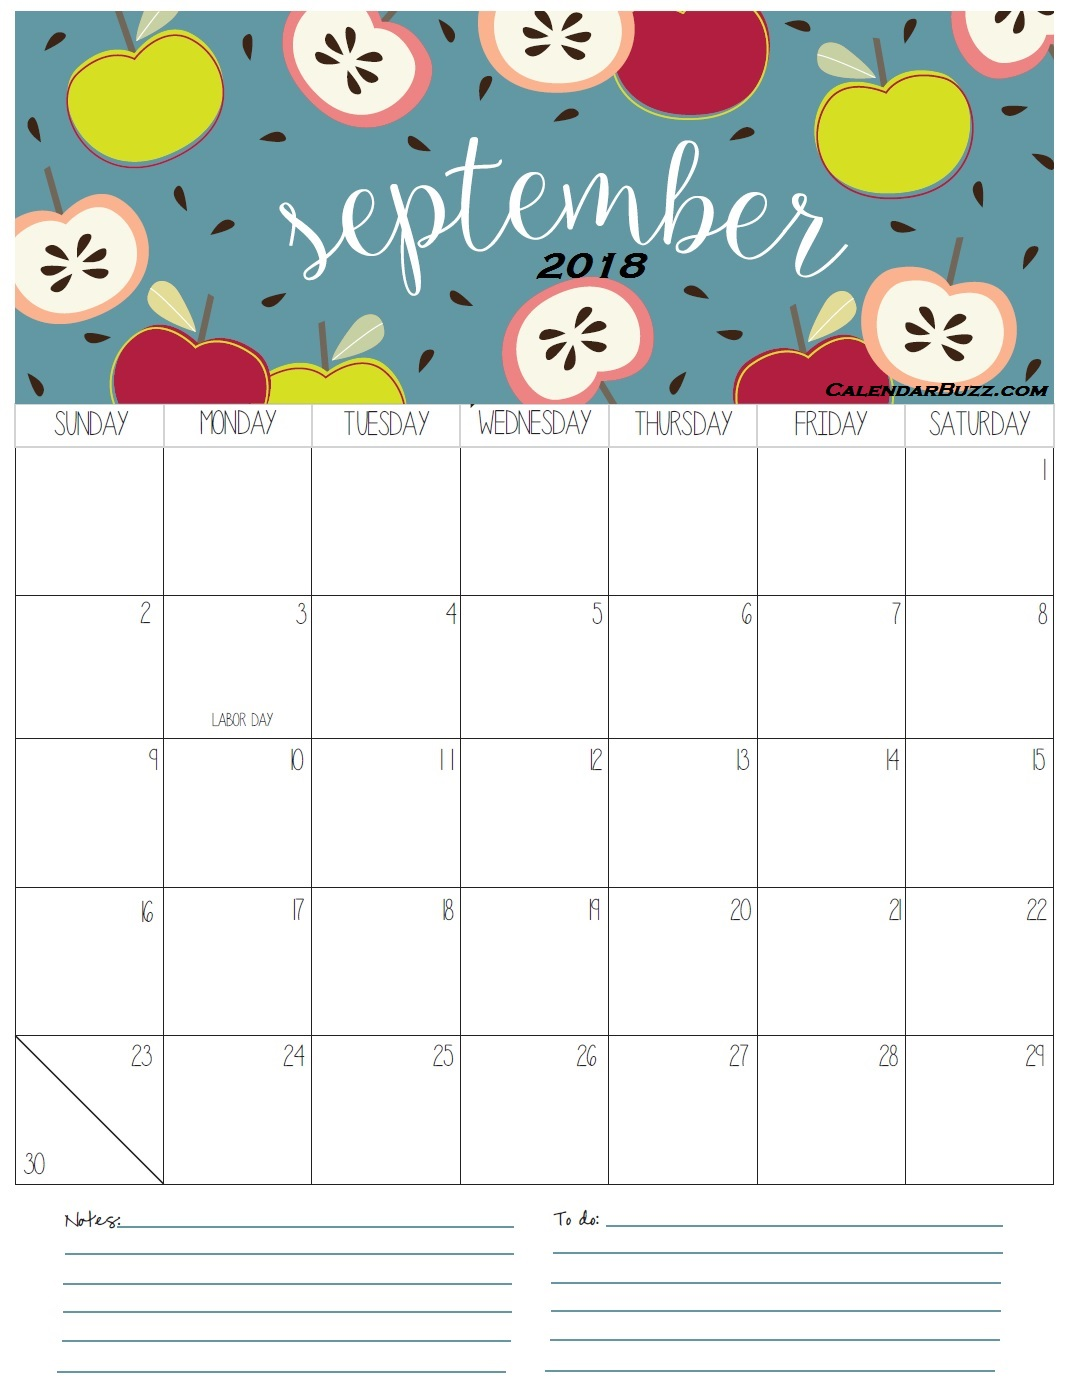 photograph regarding September Printable Calendar named Printable Calendar September 2018 With Holiday seasons - Obtain